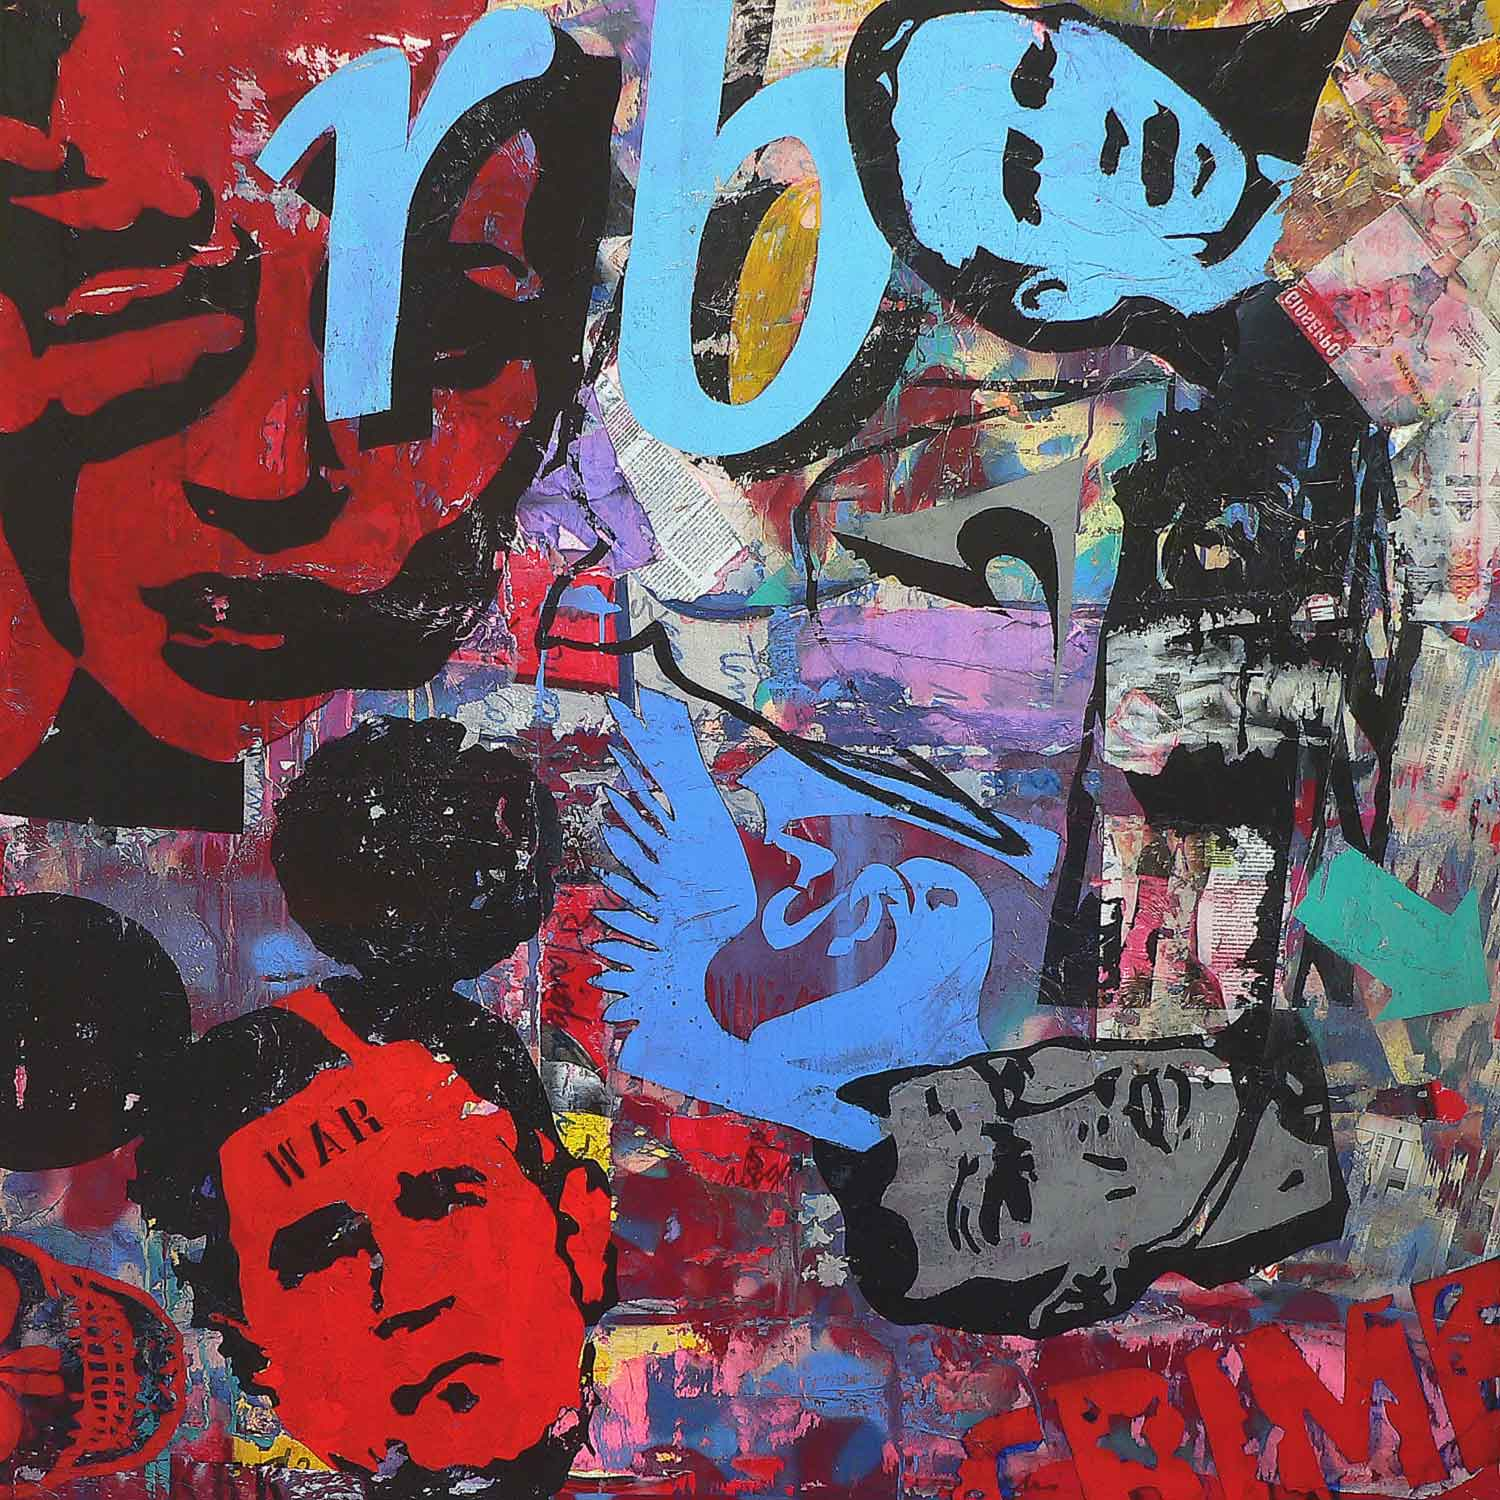 war - 130 x 130 cm - acrylic, spray paint, marker pen and collage on canvas - 2010